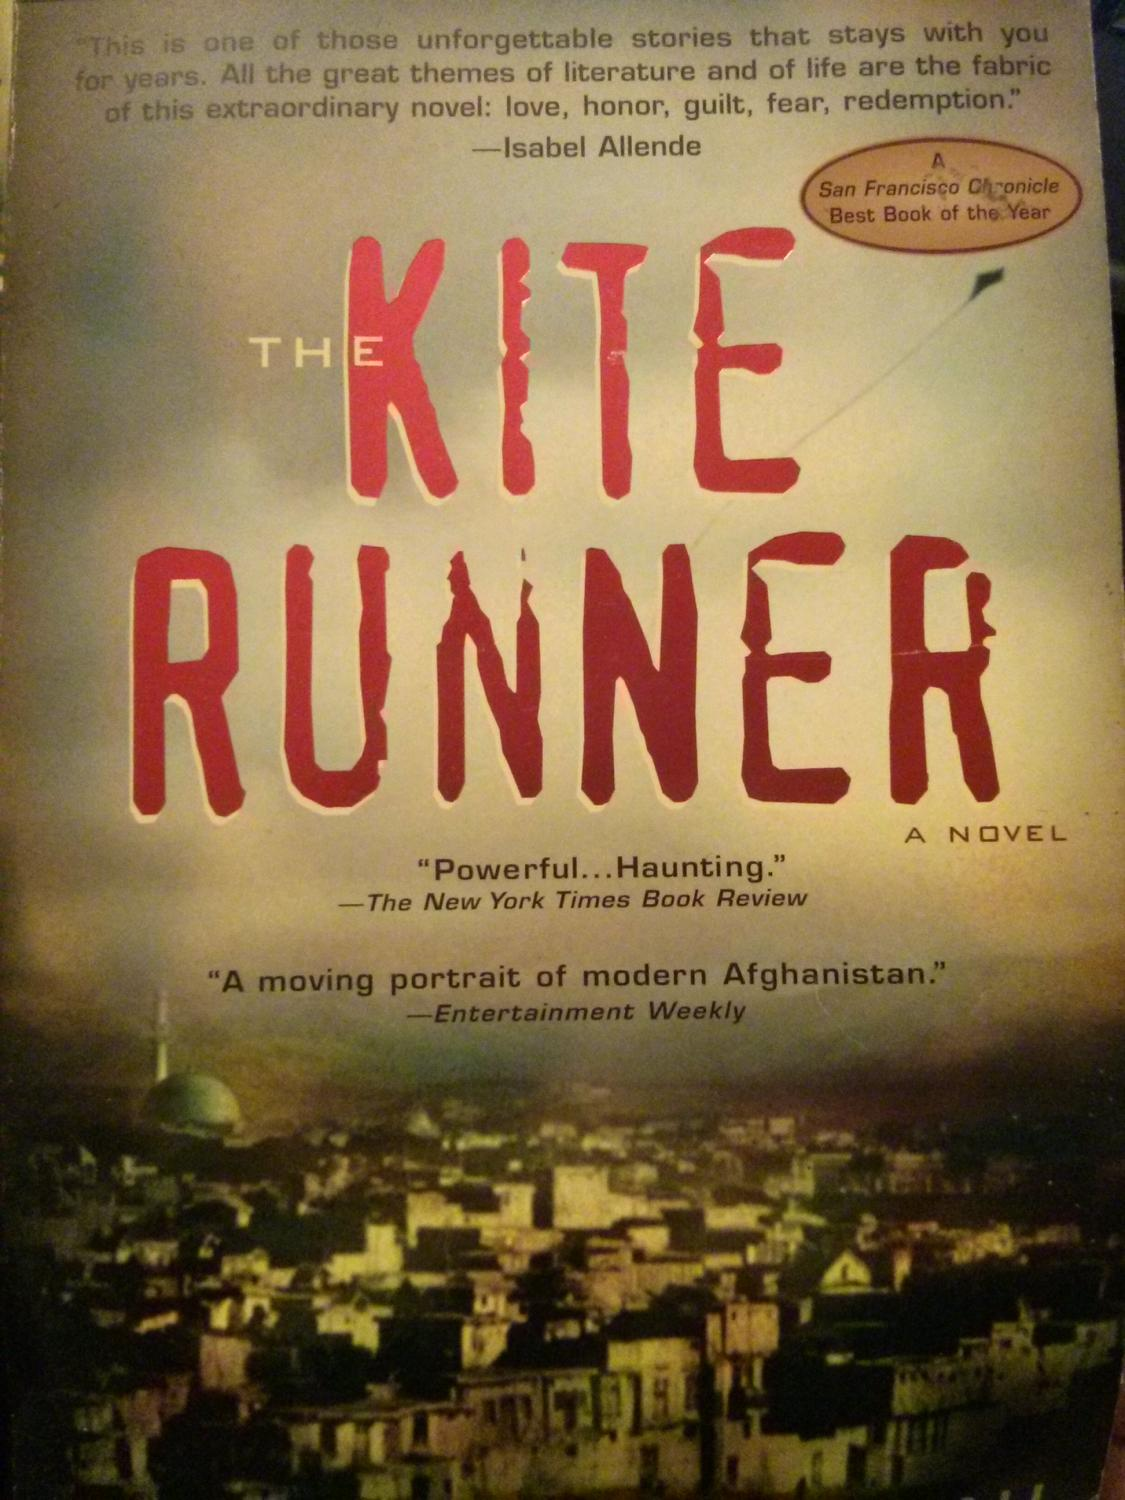 the kite runner by khaled hosseini The story begins with the narrator, amir, recalling an incident that happened to him a long time ago, saying that the event transformed him.